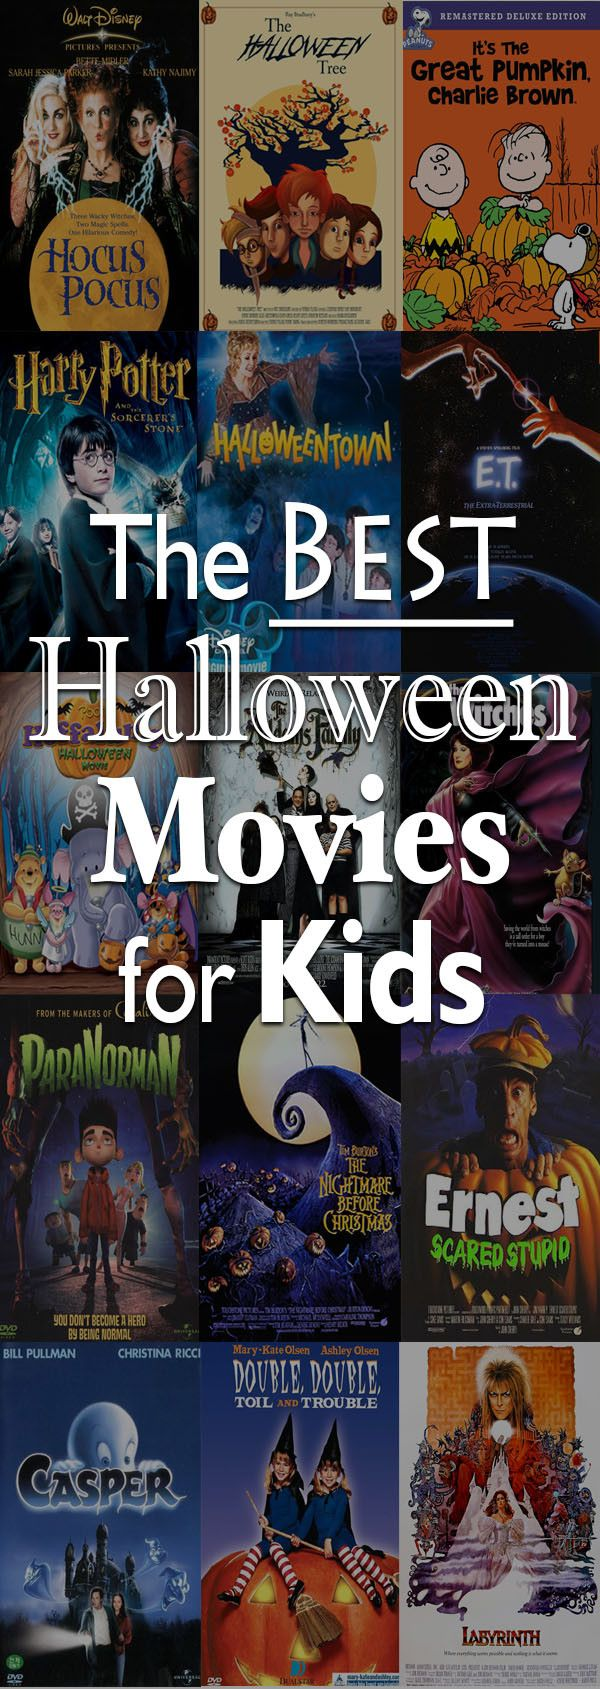 the best halloween movies for kids list of kid friendly movies for fall - Top Kids Halloween Movies